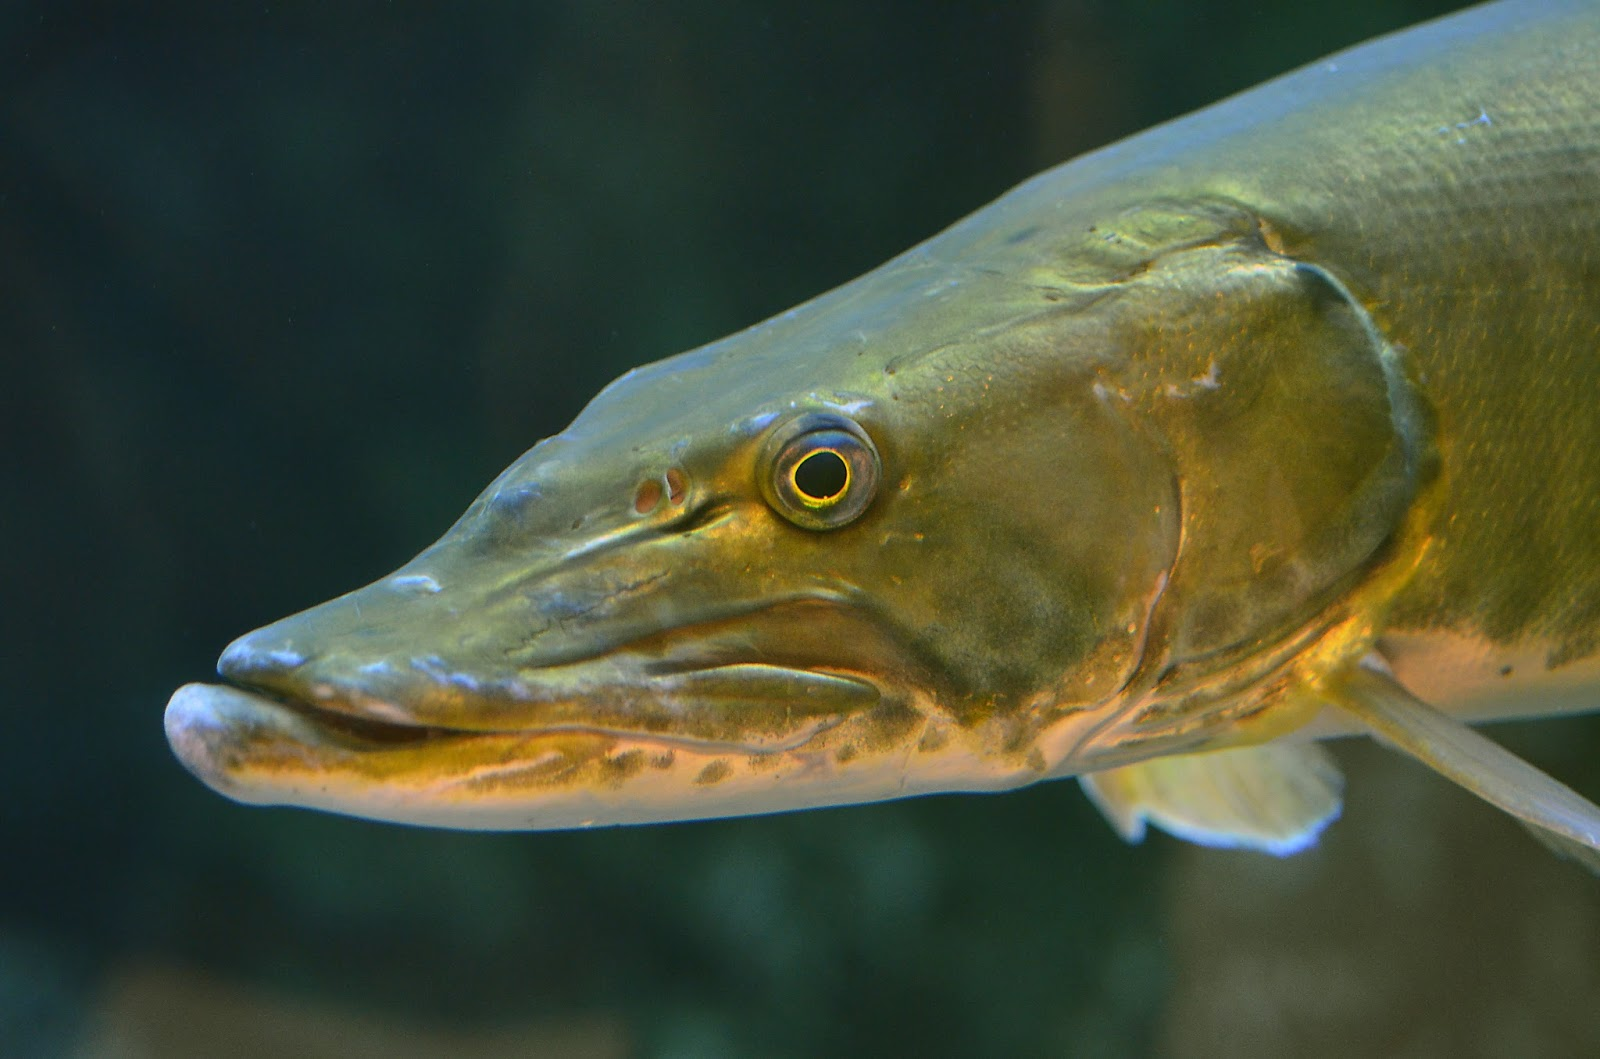 Virginia fishes new muskellunge esox masquinongy for Muskie fish teeth